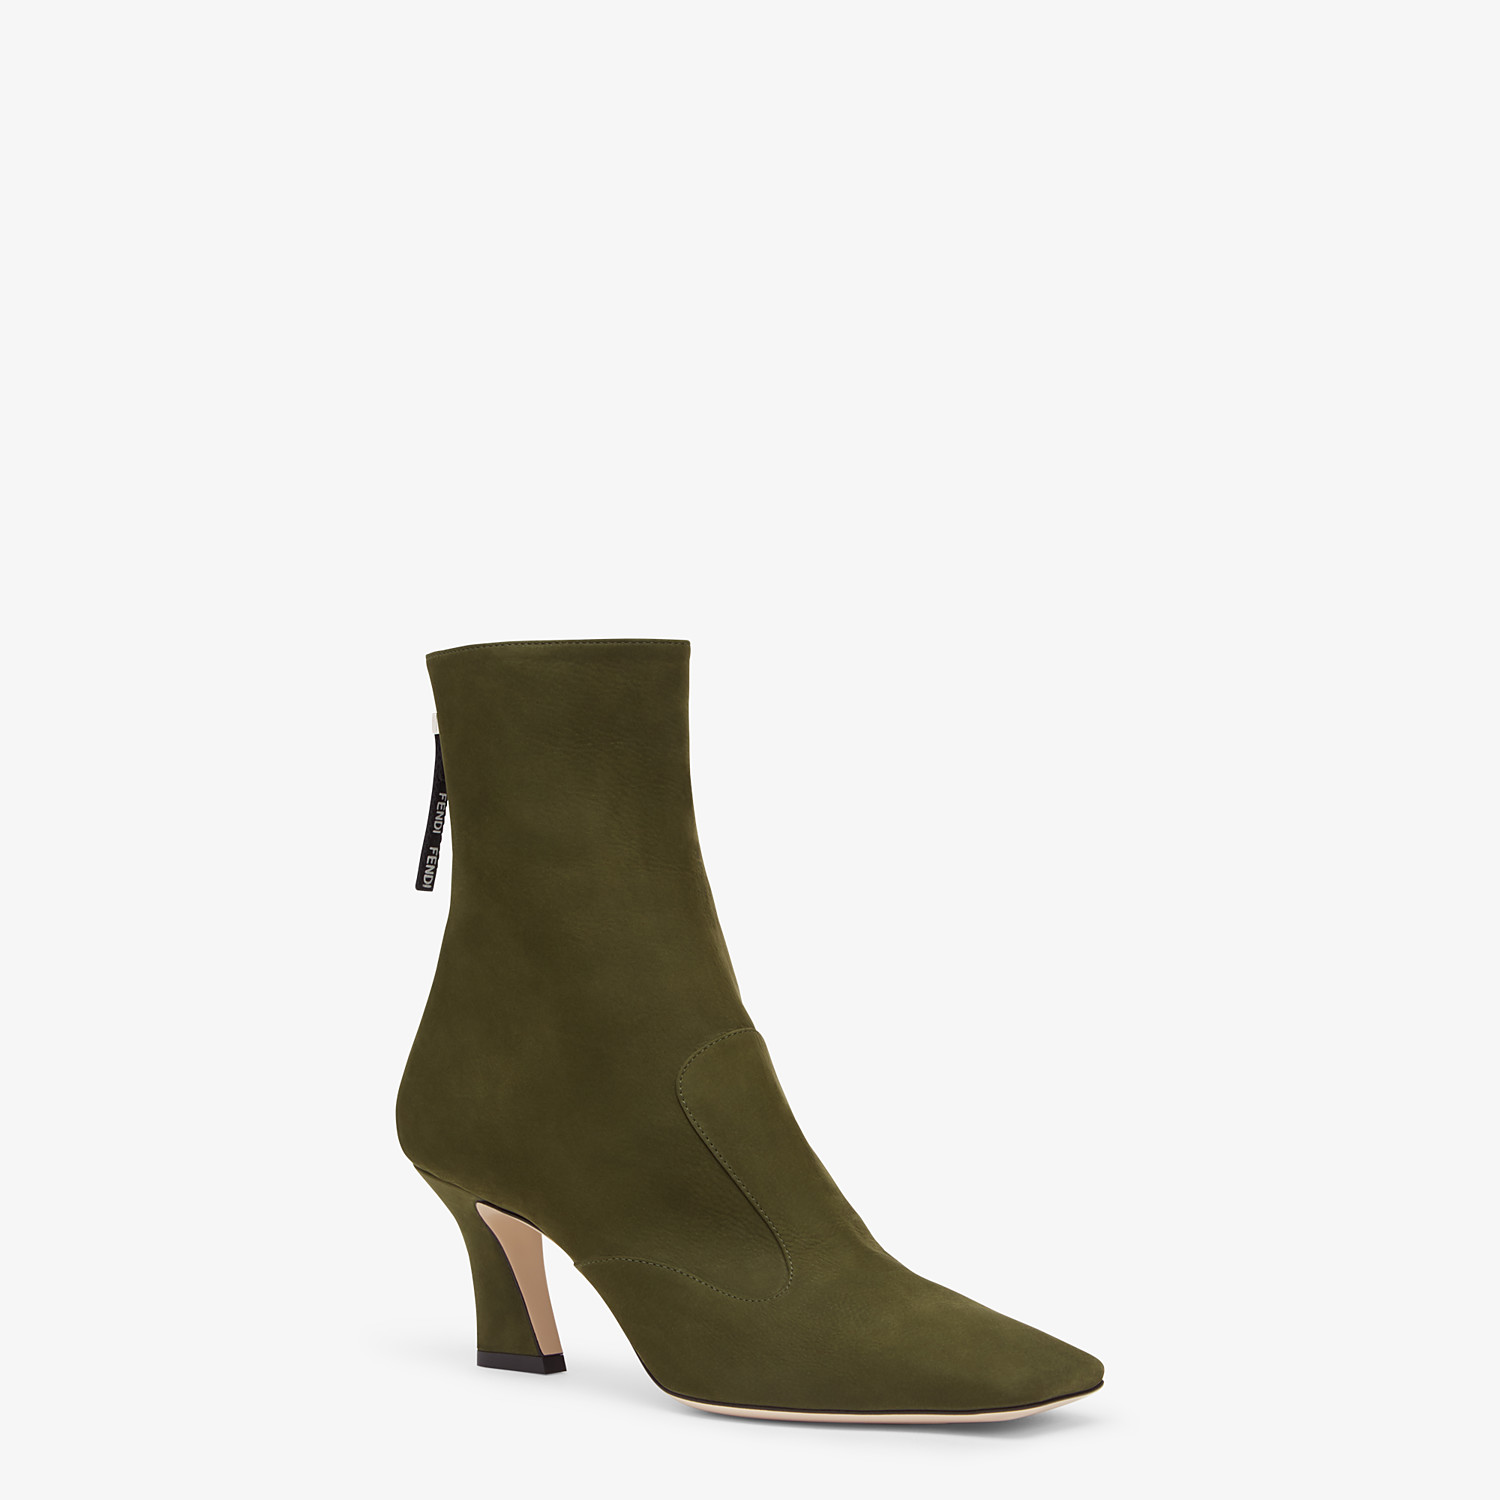 FENDI ANKLE BOOTS - Booties in green nubuck leather - view 2 detail